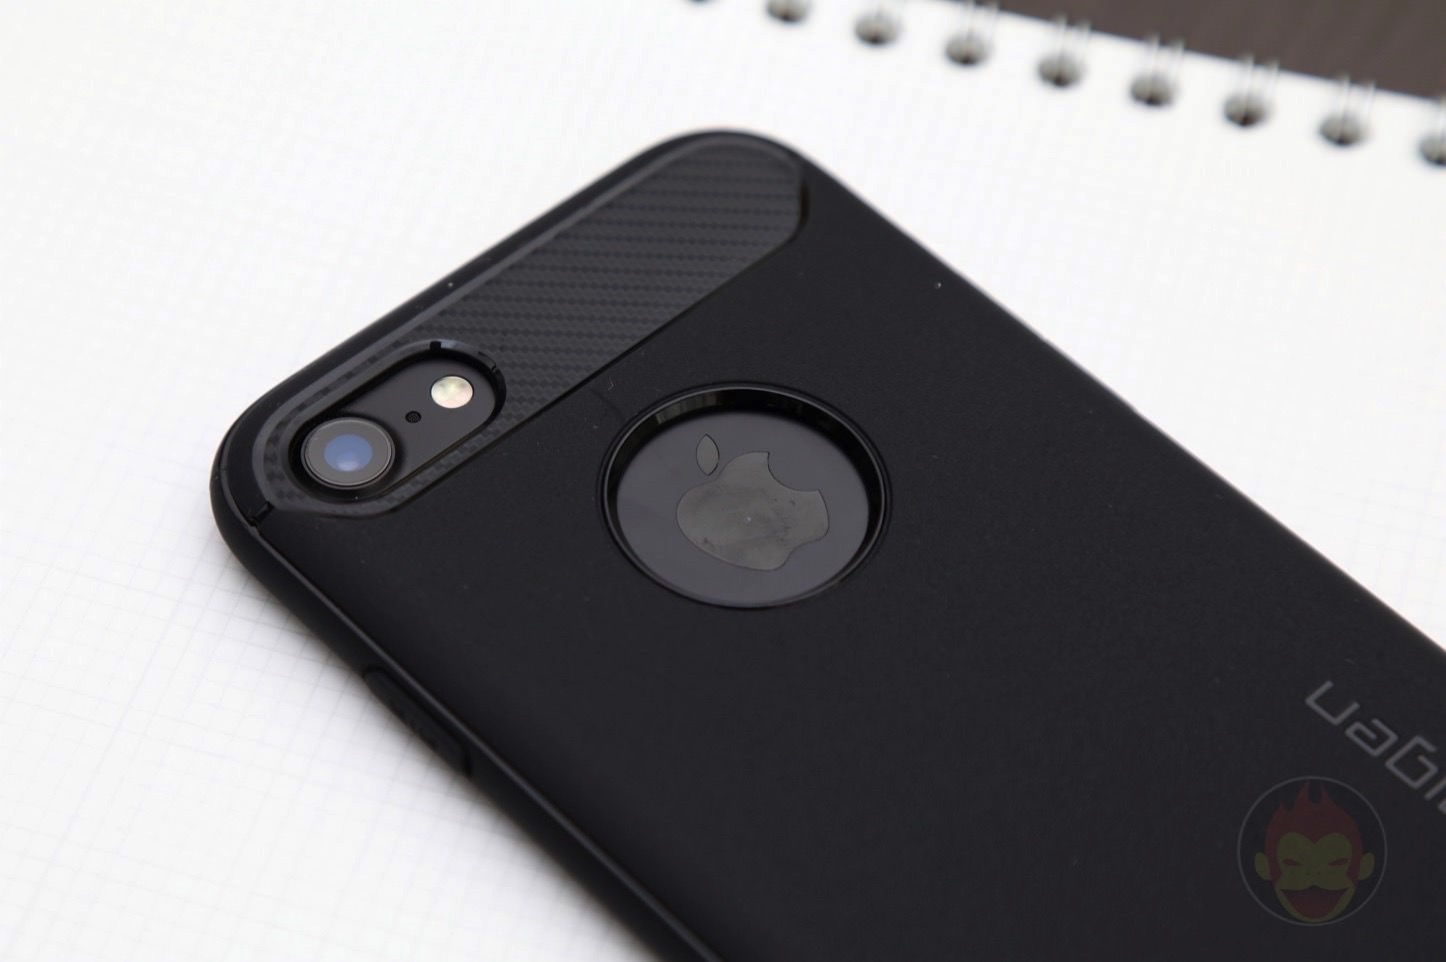 Rugged-Armor-for-iPhone7-7Plus-06.jpg